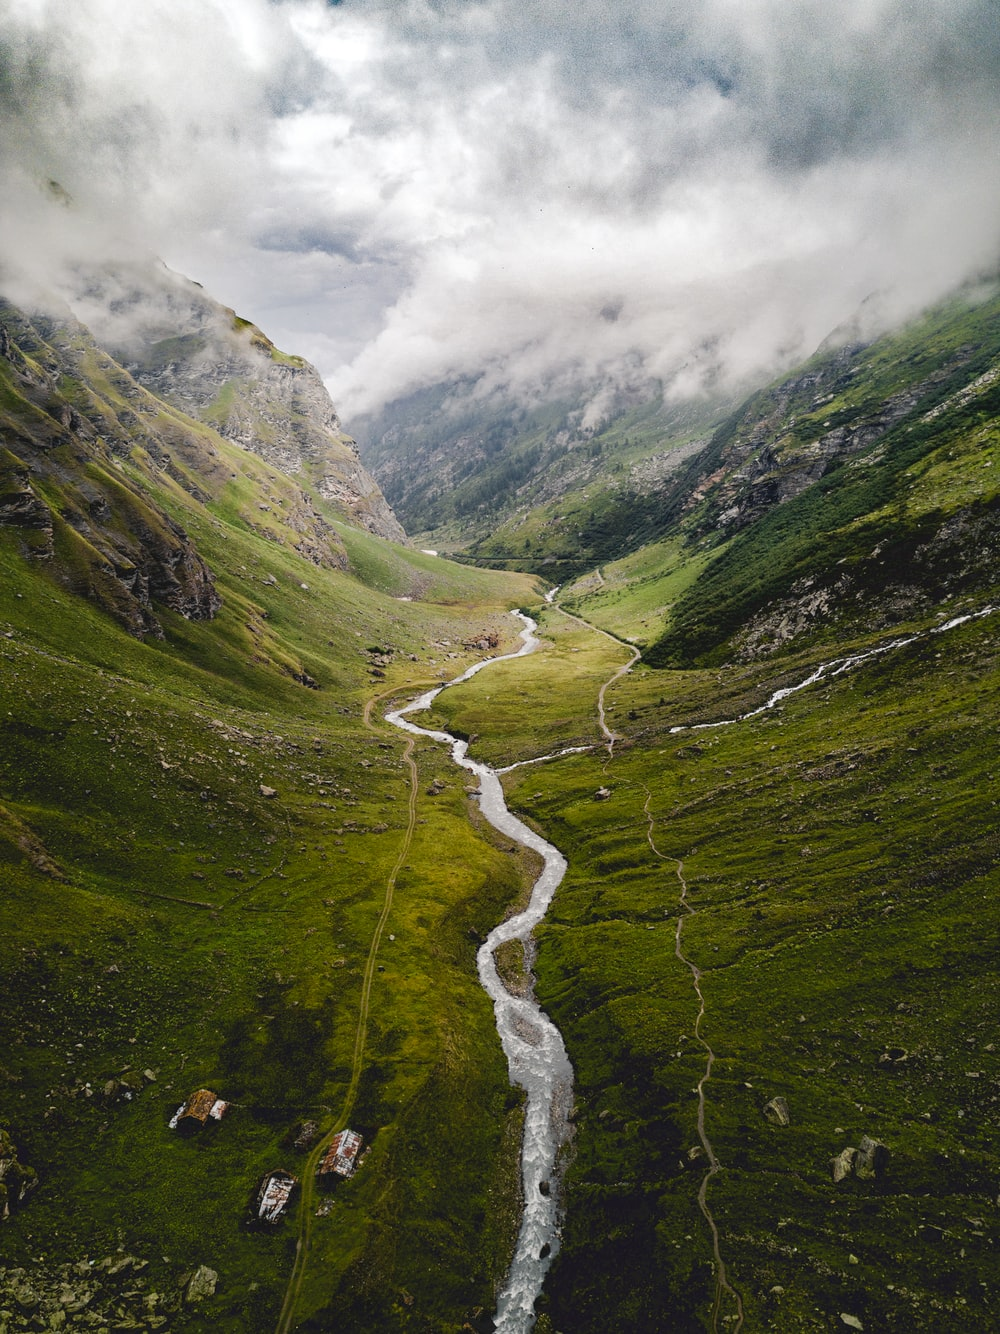 valley pictures hd download free images on unsplash